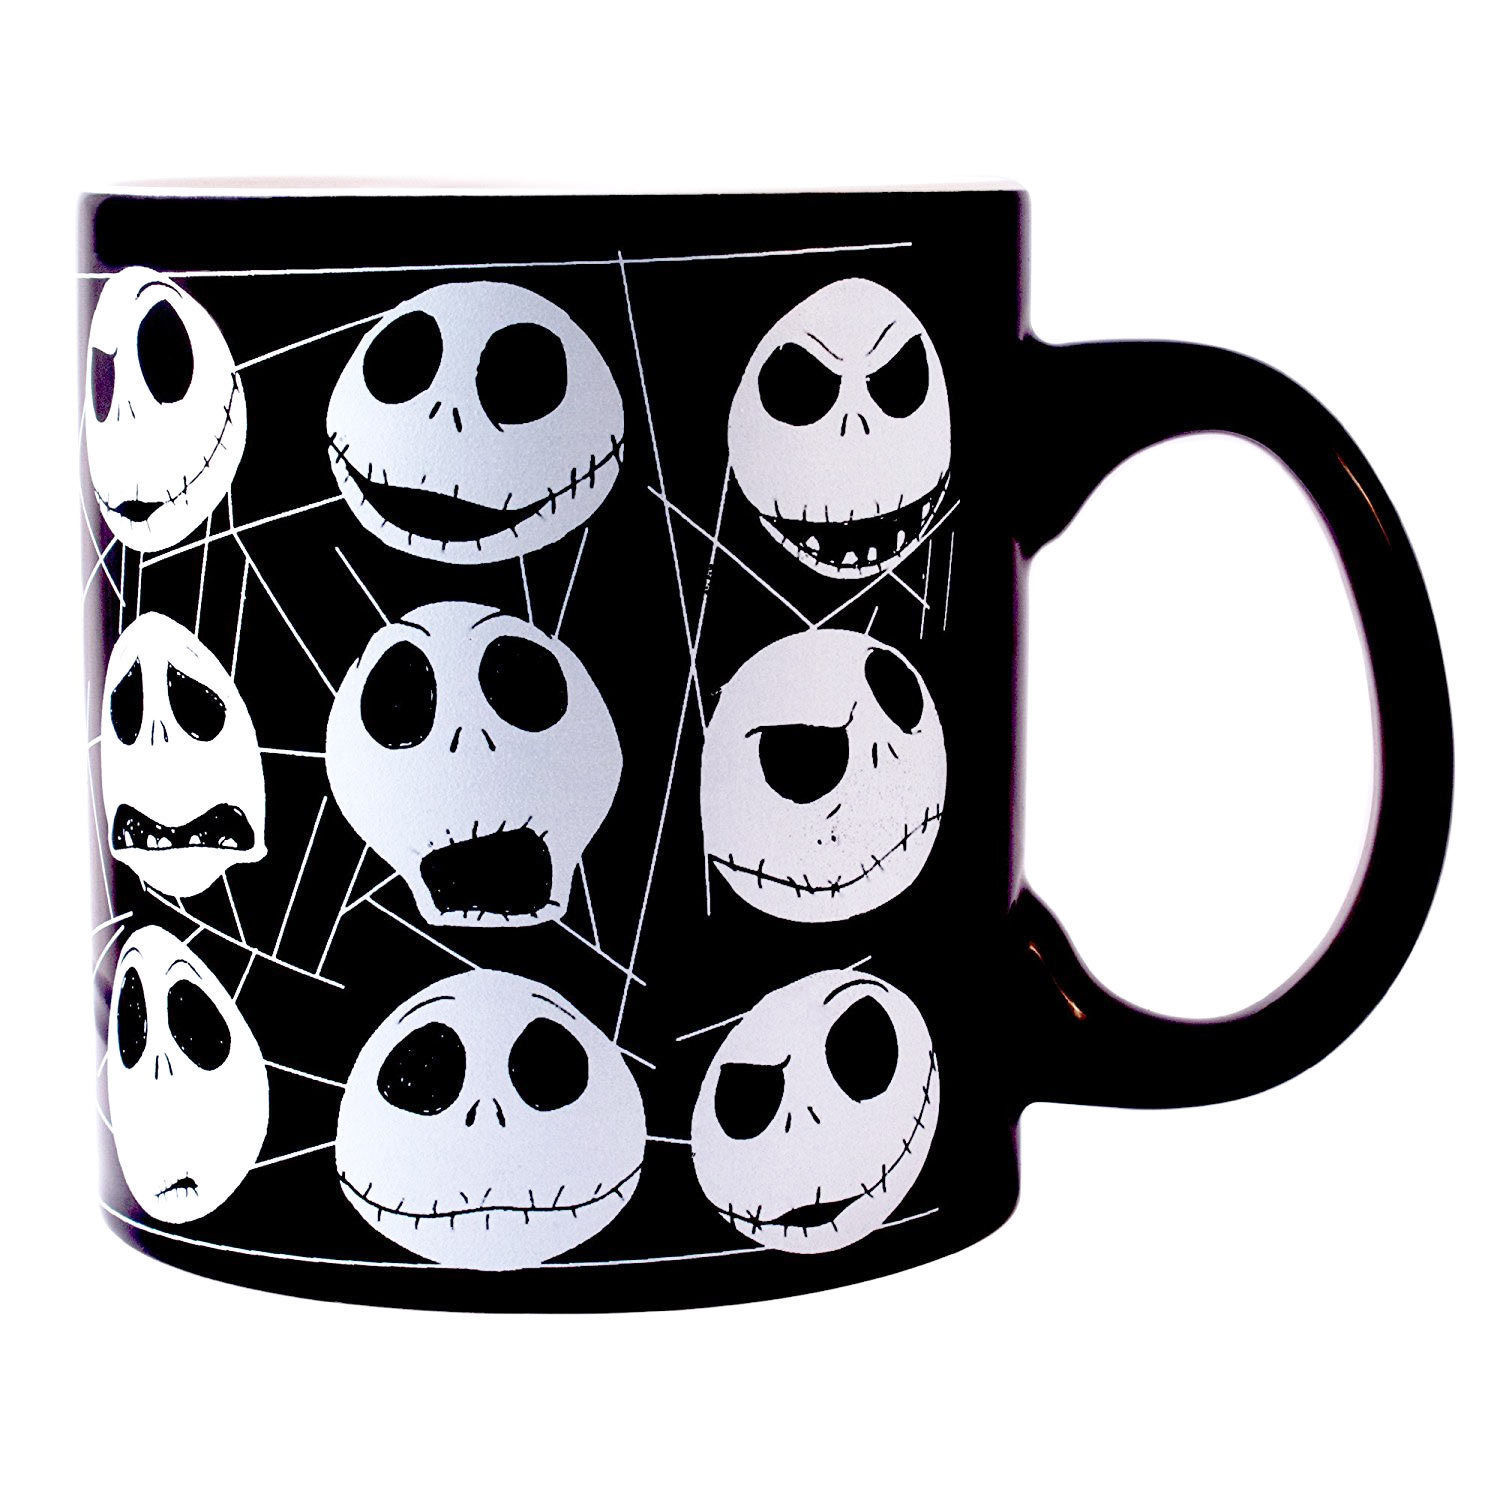 Nightmare Before Christmas Glow In The Dark and similar items